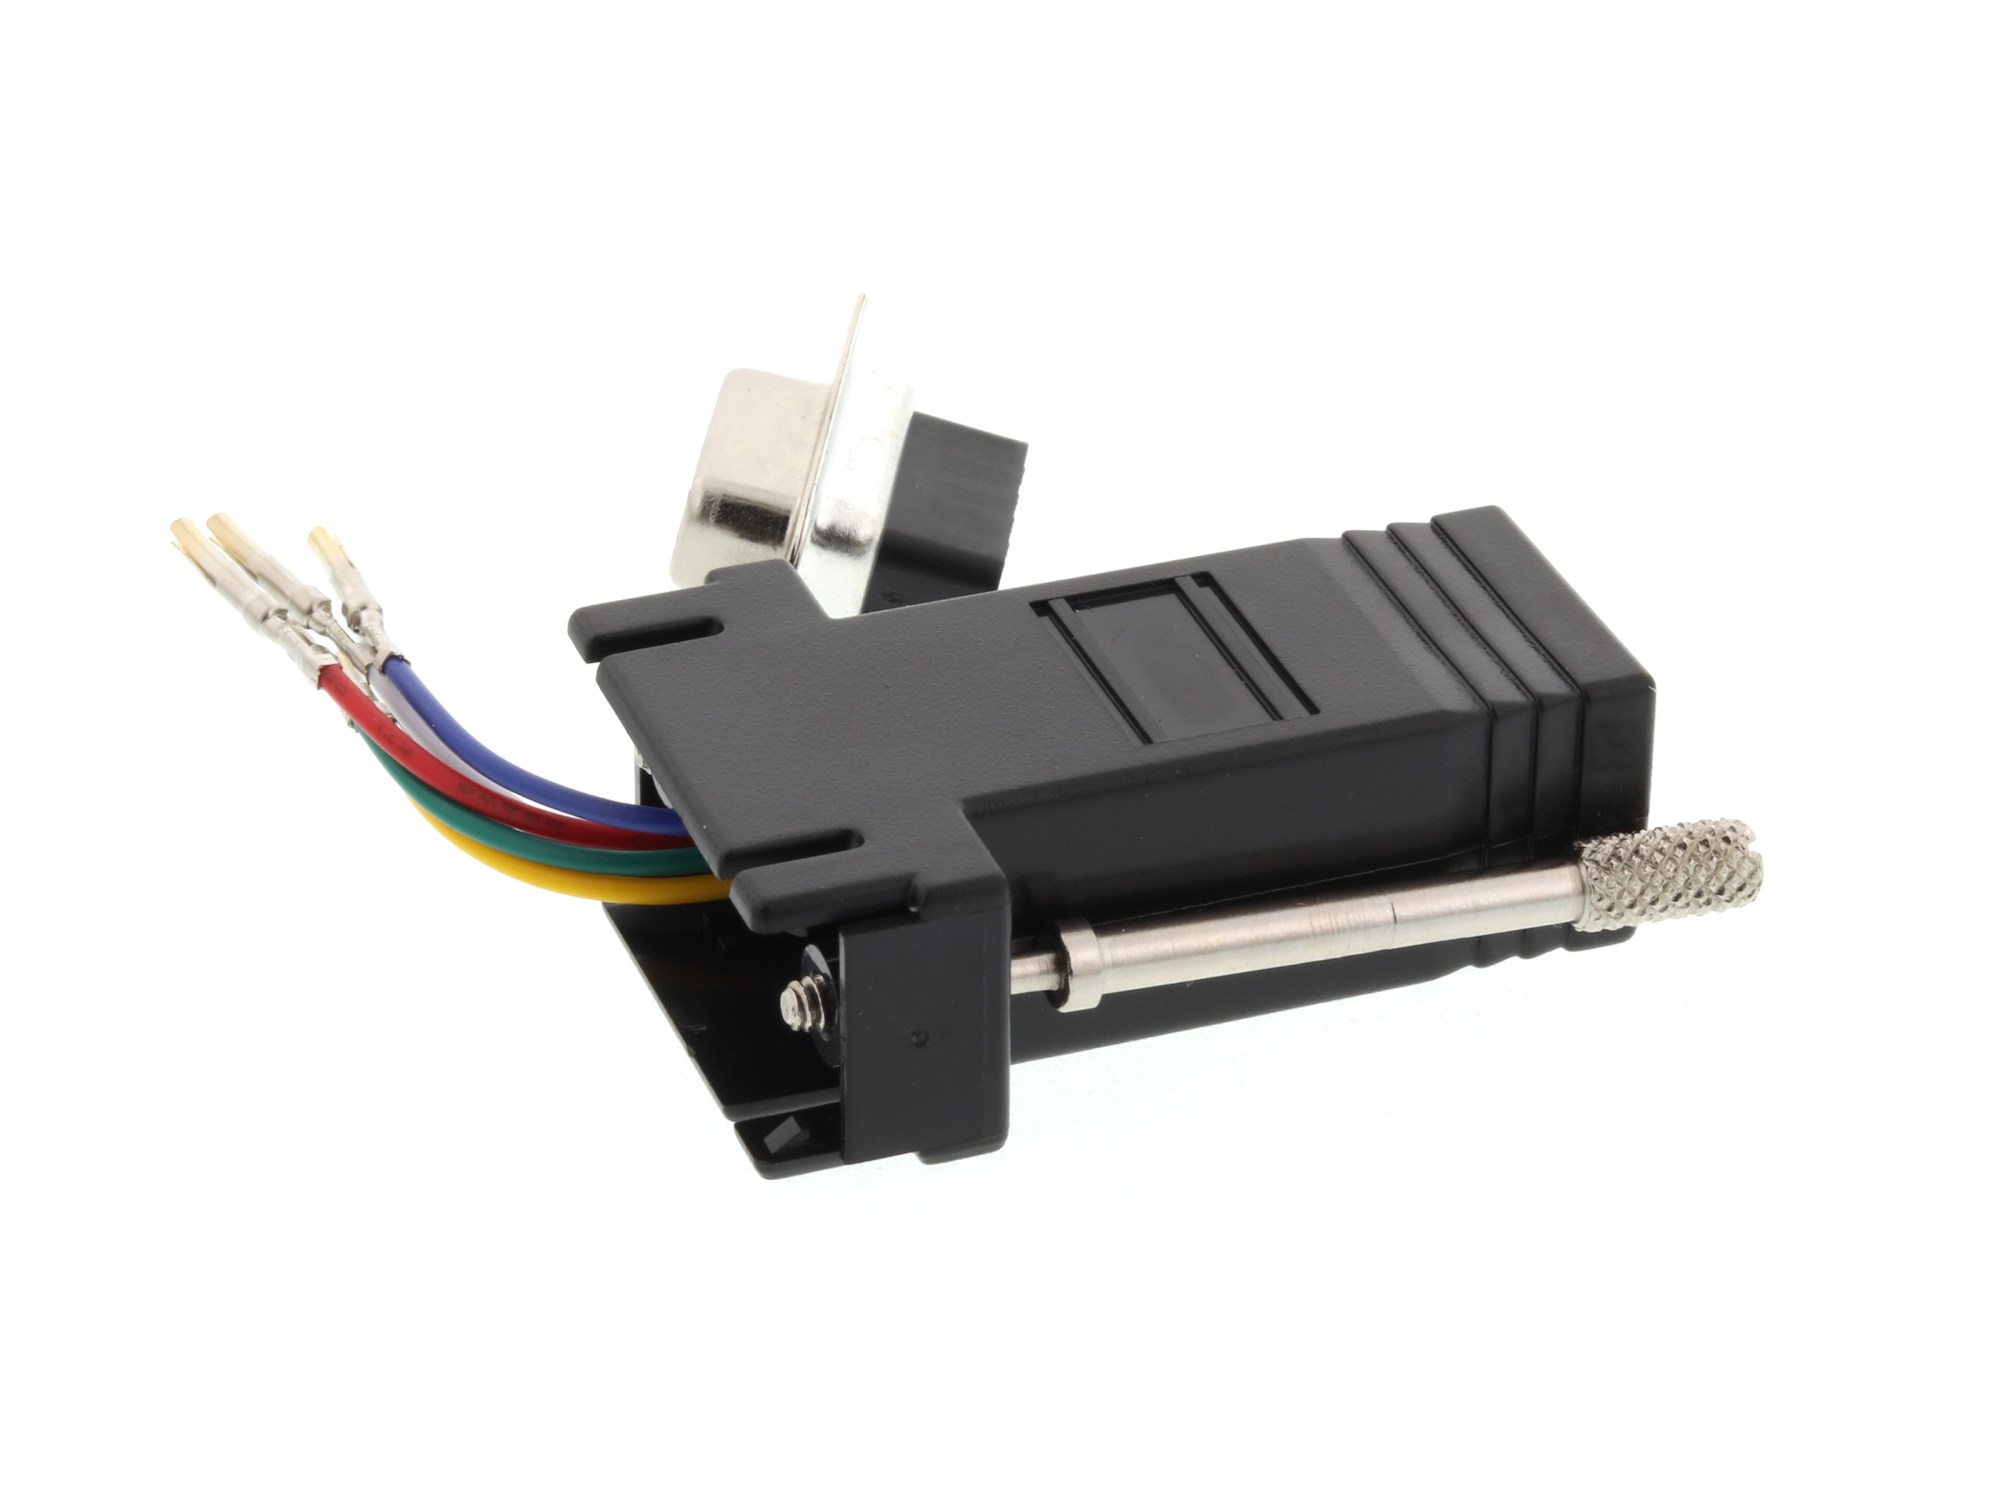 hight resolution of  picture of modular adapter kit db9 female to rj11 rj12 black